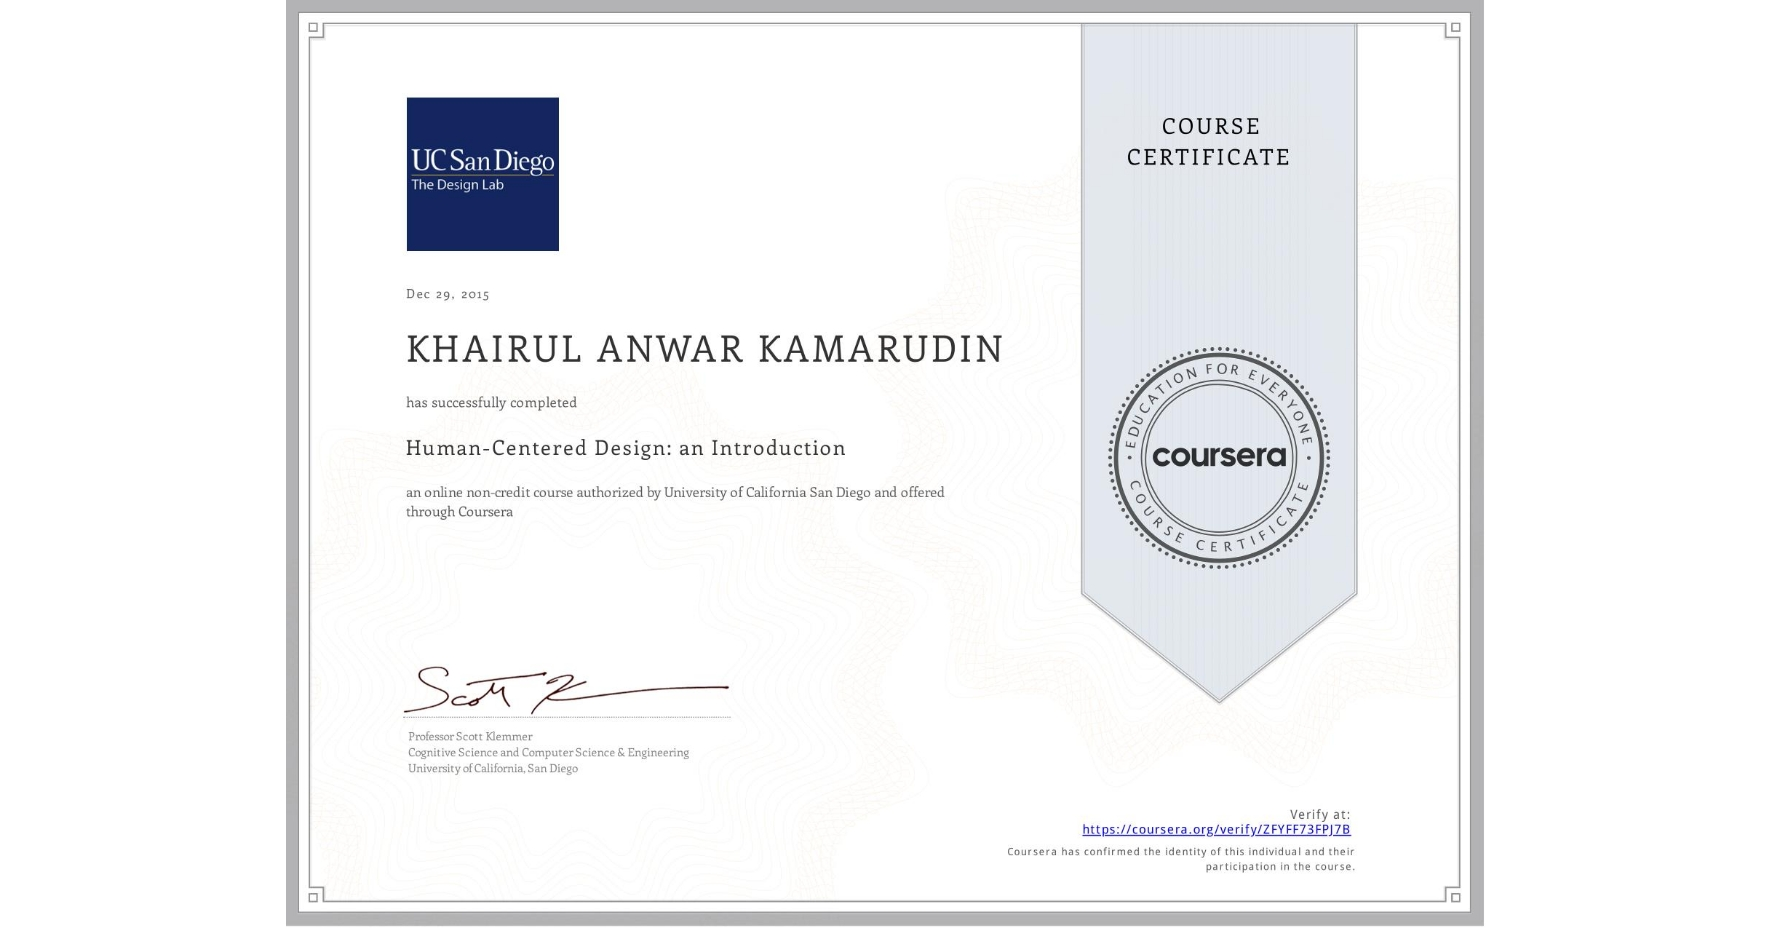 View certificate for KHAIRUL ANWAR  KAMARUDIN, Human-Centered Design: an Introduction, an online non-credit course authorized by University of California San Diego and offered through Coursera